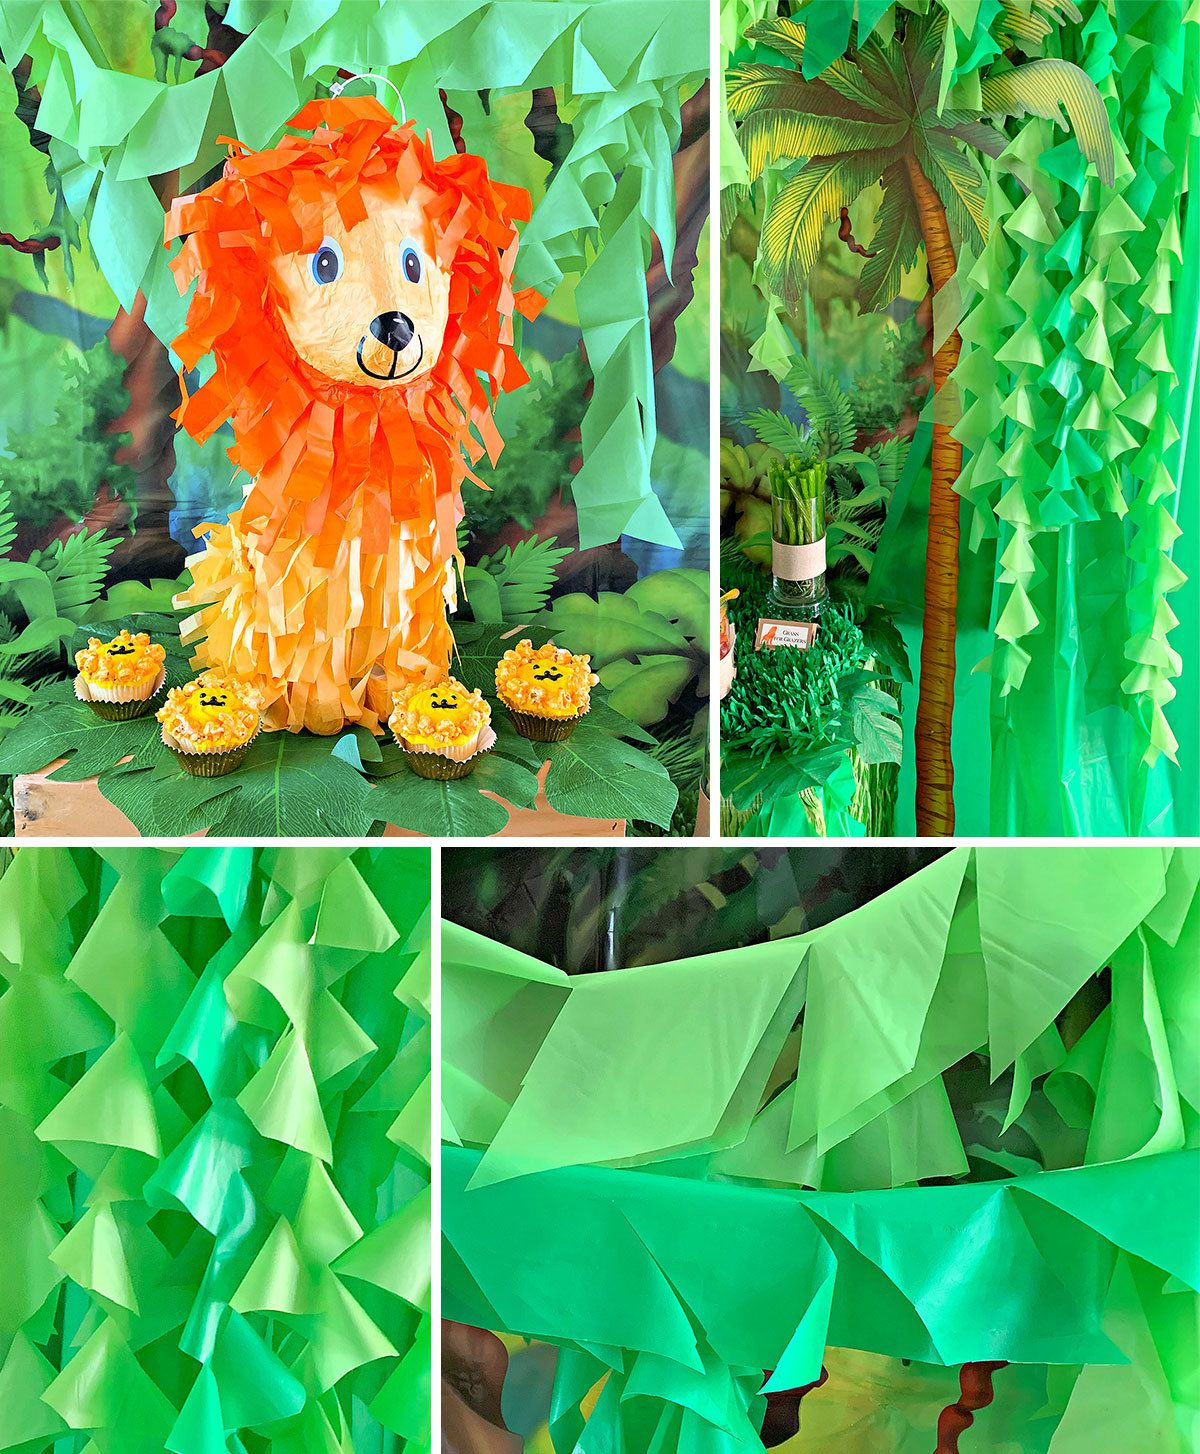 Lion King Party Ideas - Decorations